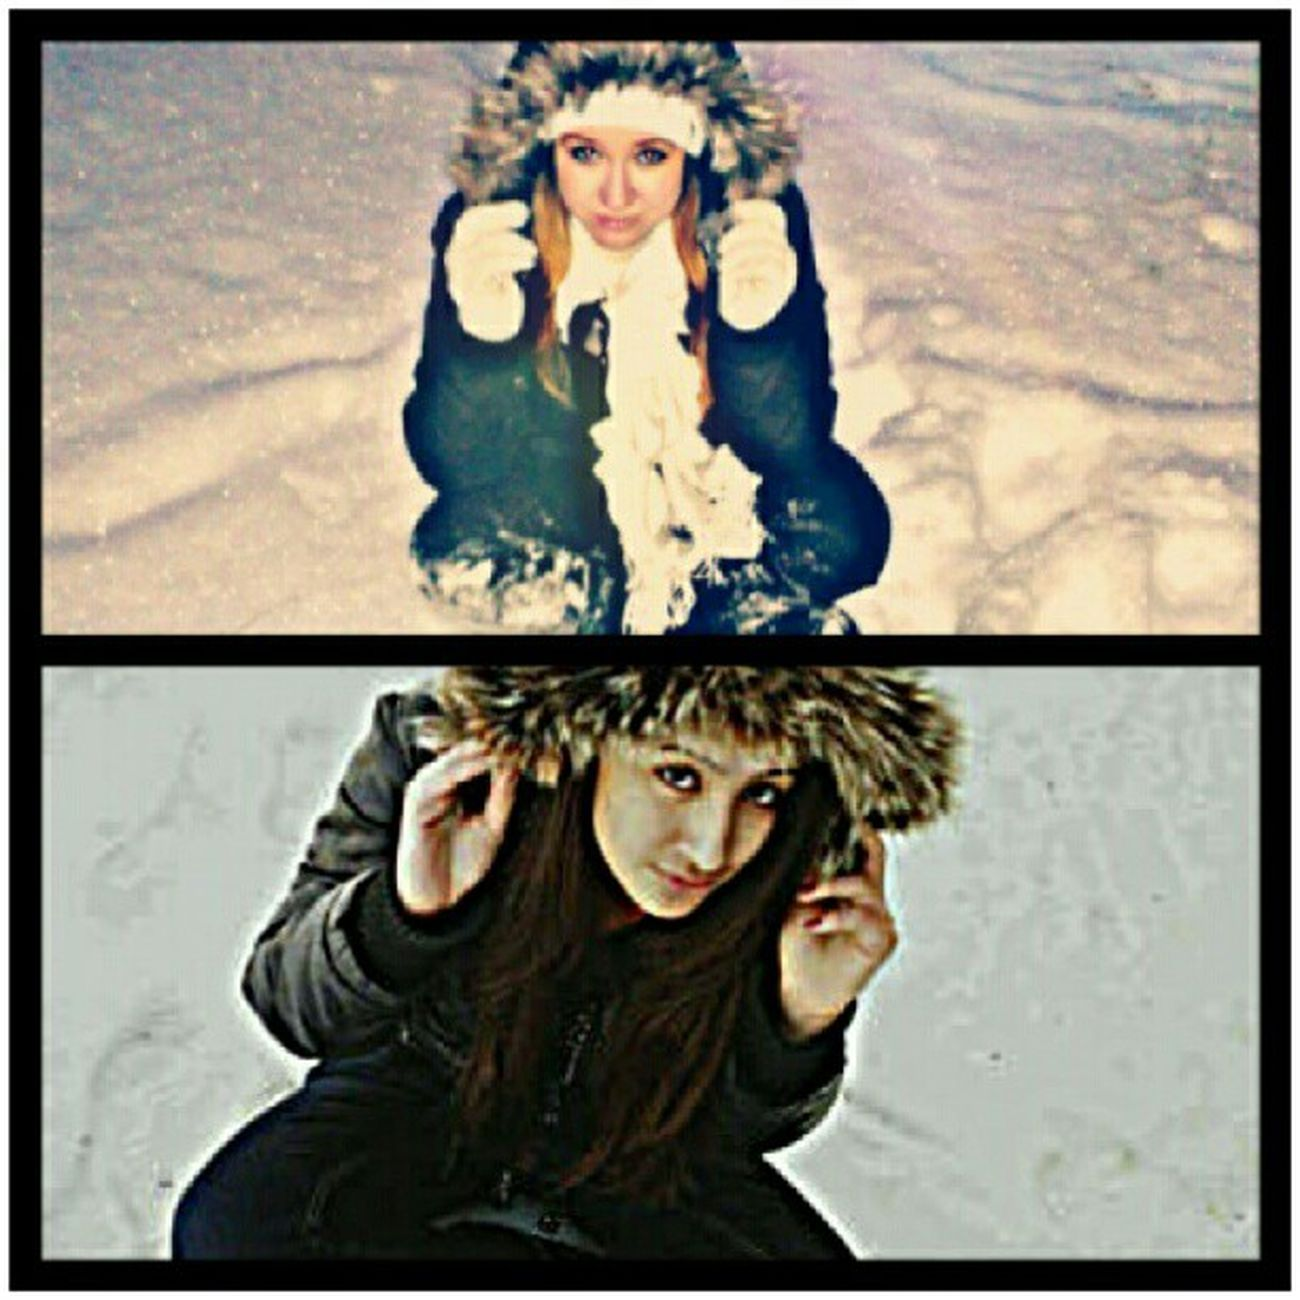 Me Bestfriend Bestoftheday Pictitch picoftheday winter snow swag cute instamood jj jj_forum